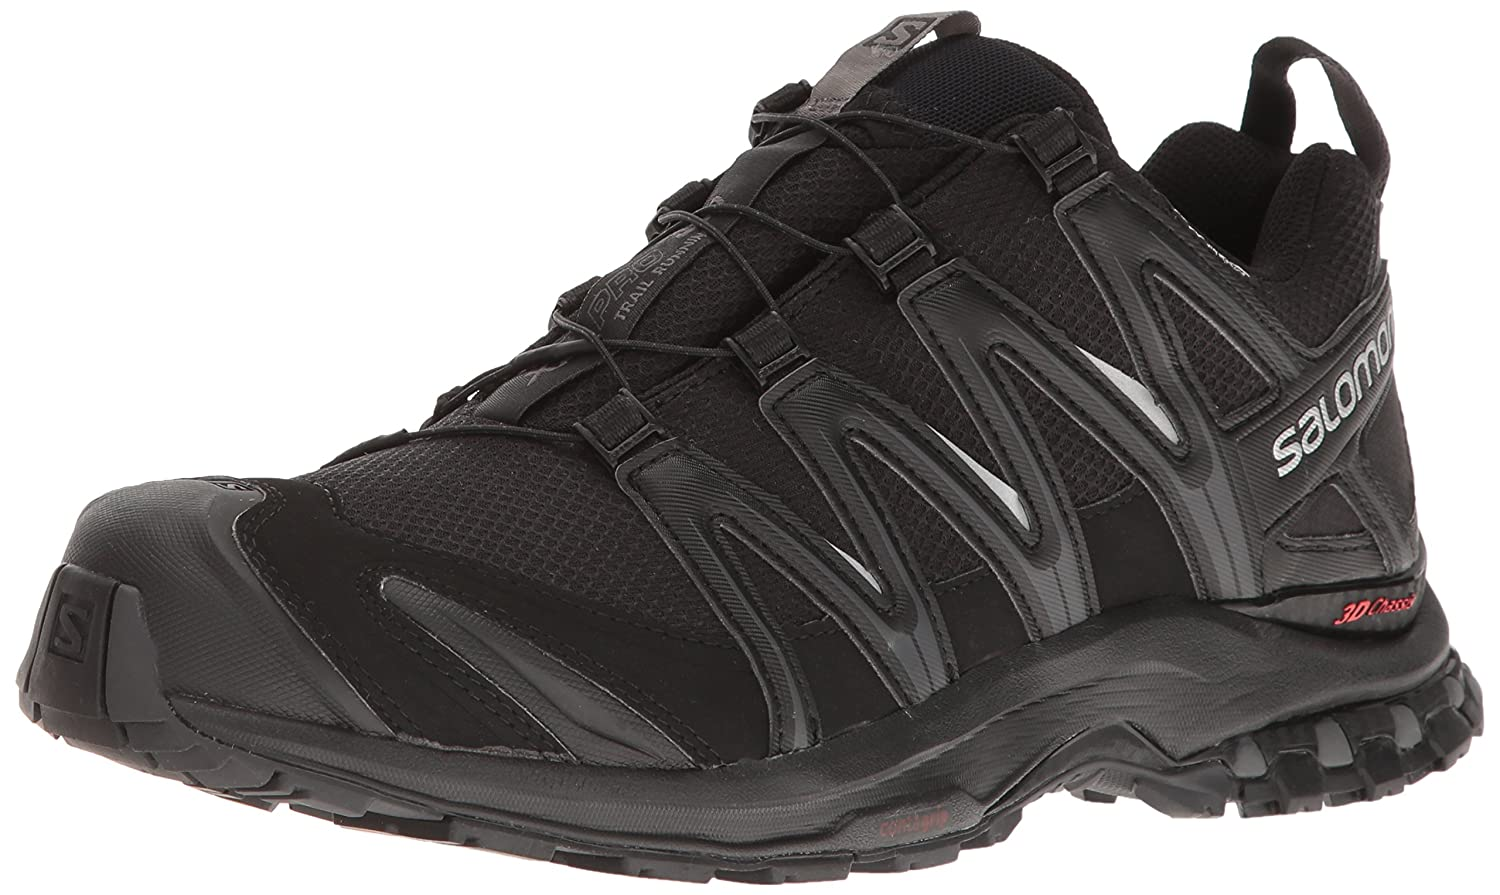 Salomon Men's XA Pro 3D CS WP Trail Runner